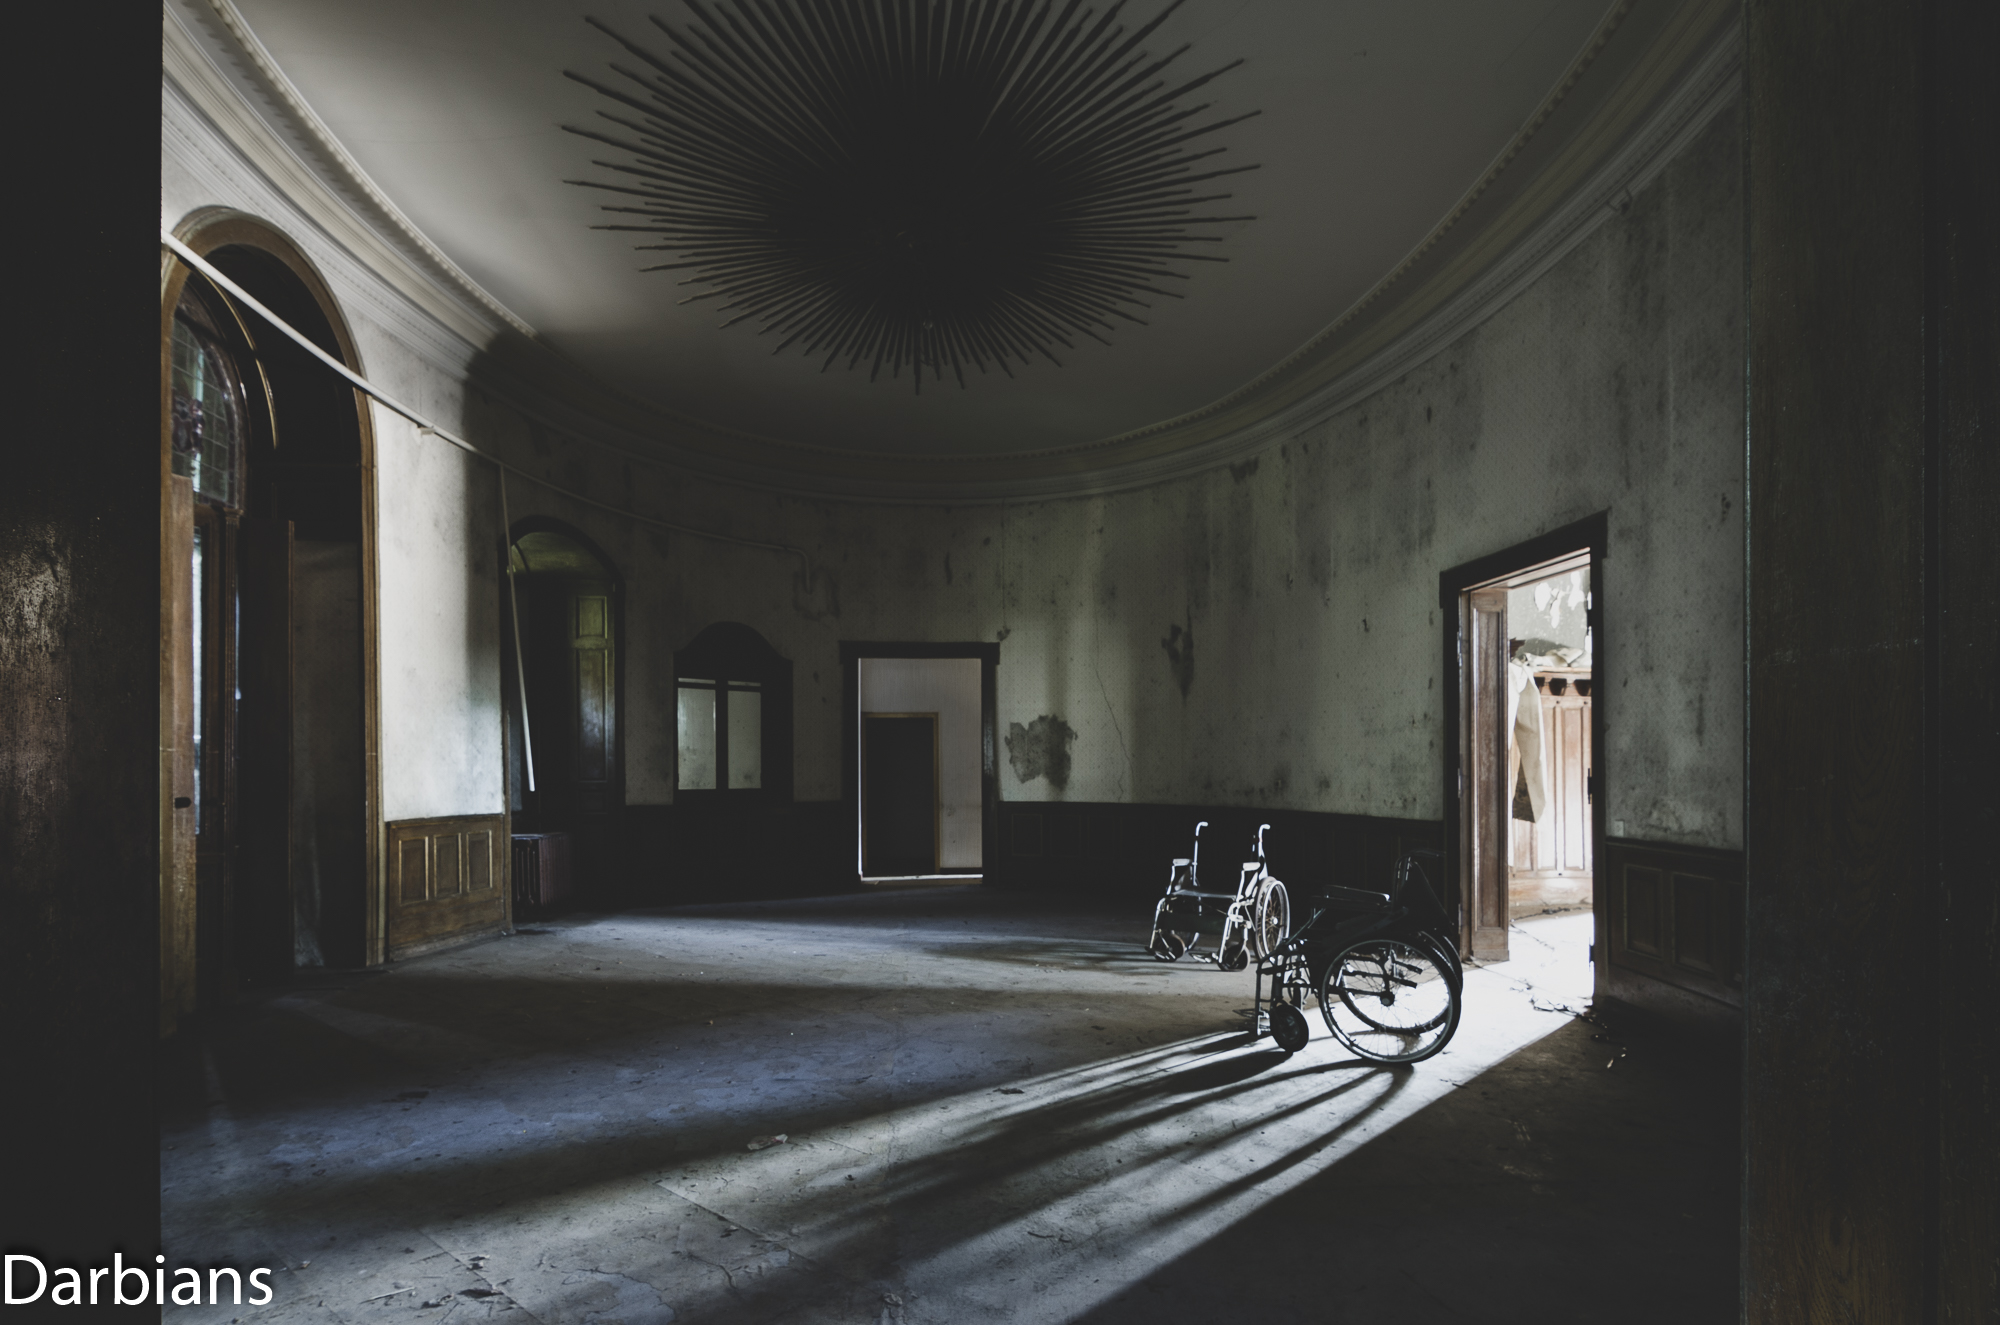 House Of Wheelchairs. Another angle of the oval room.